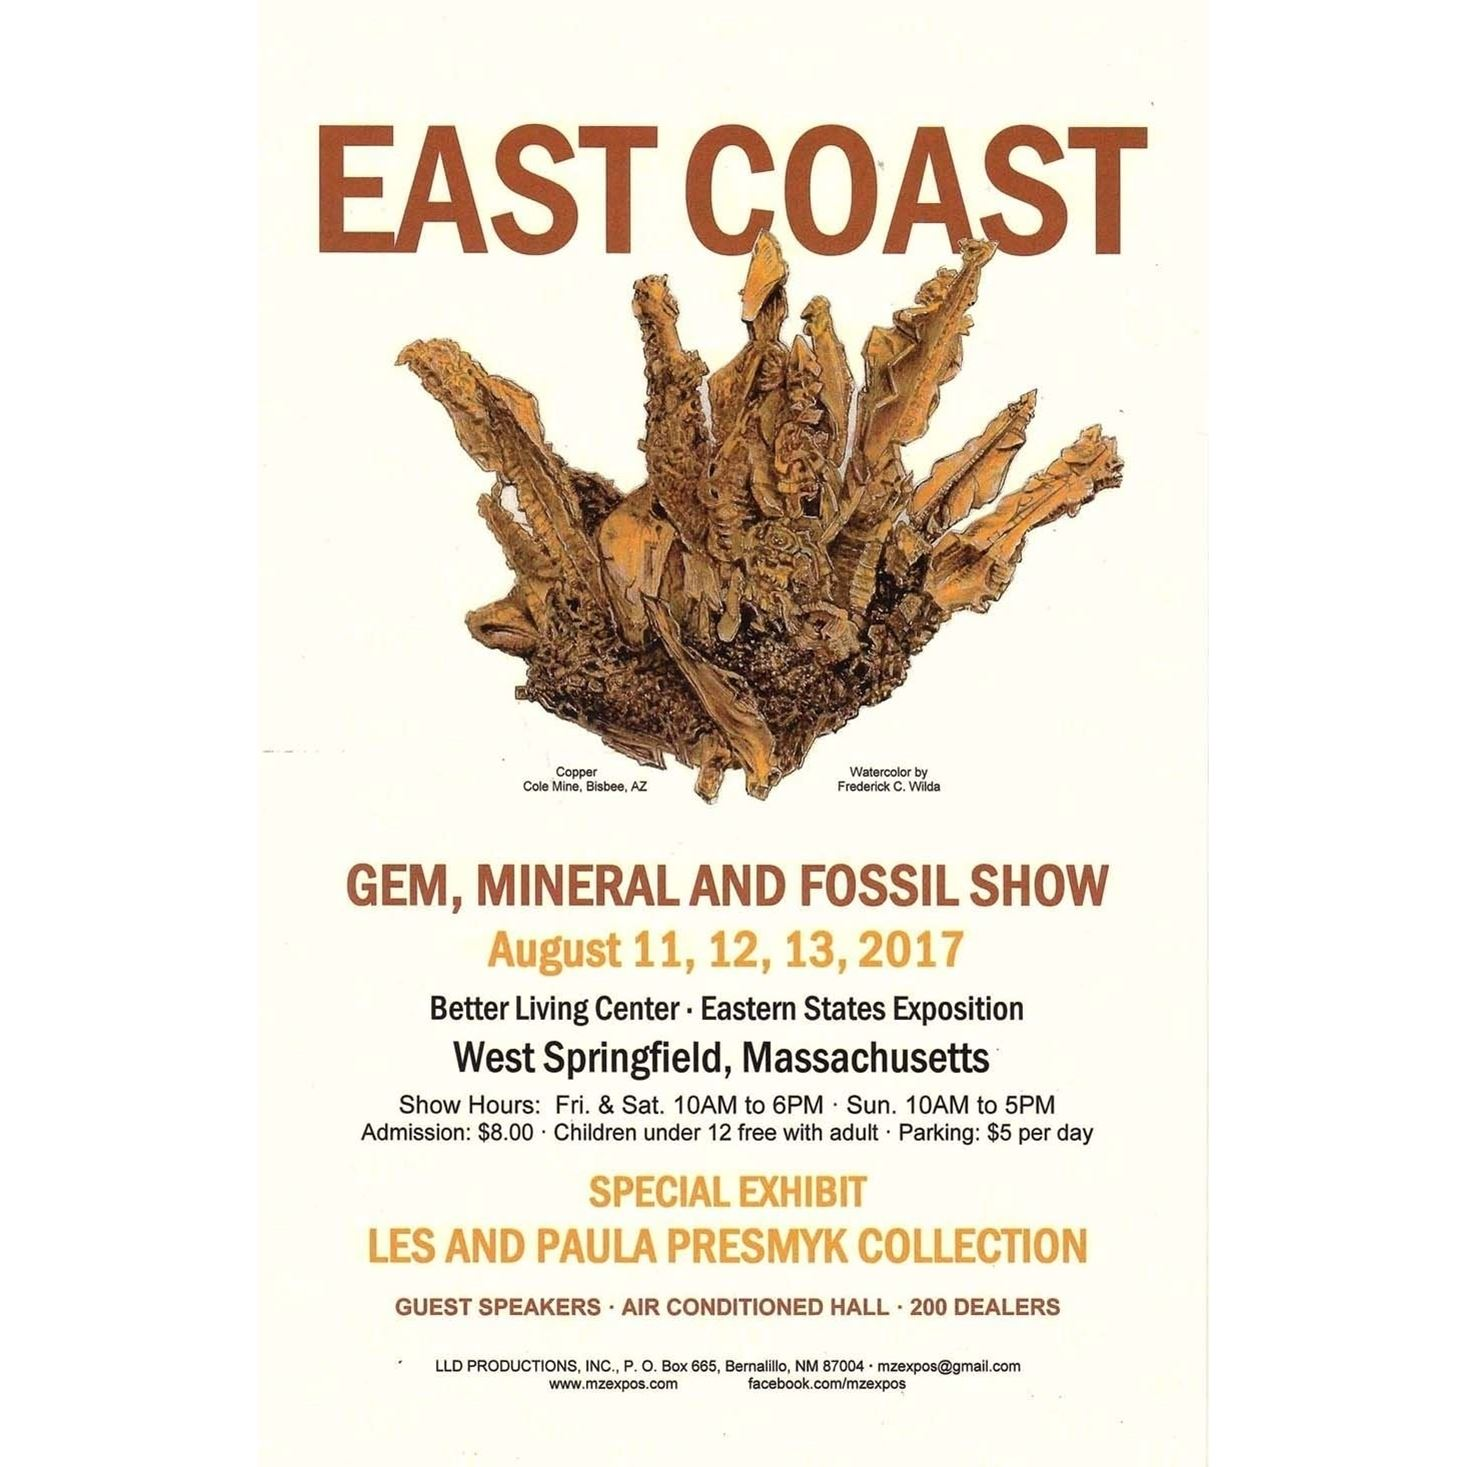 East Coast Gem, Mineral and Fossil Show